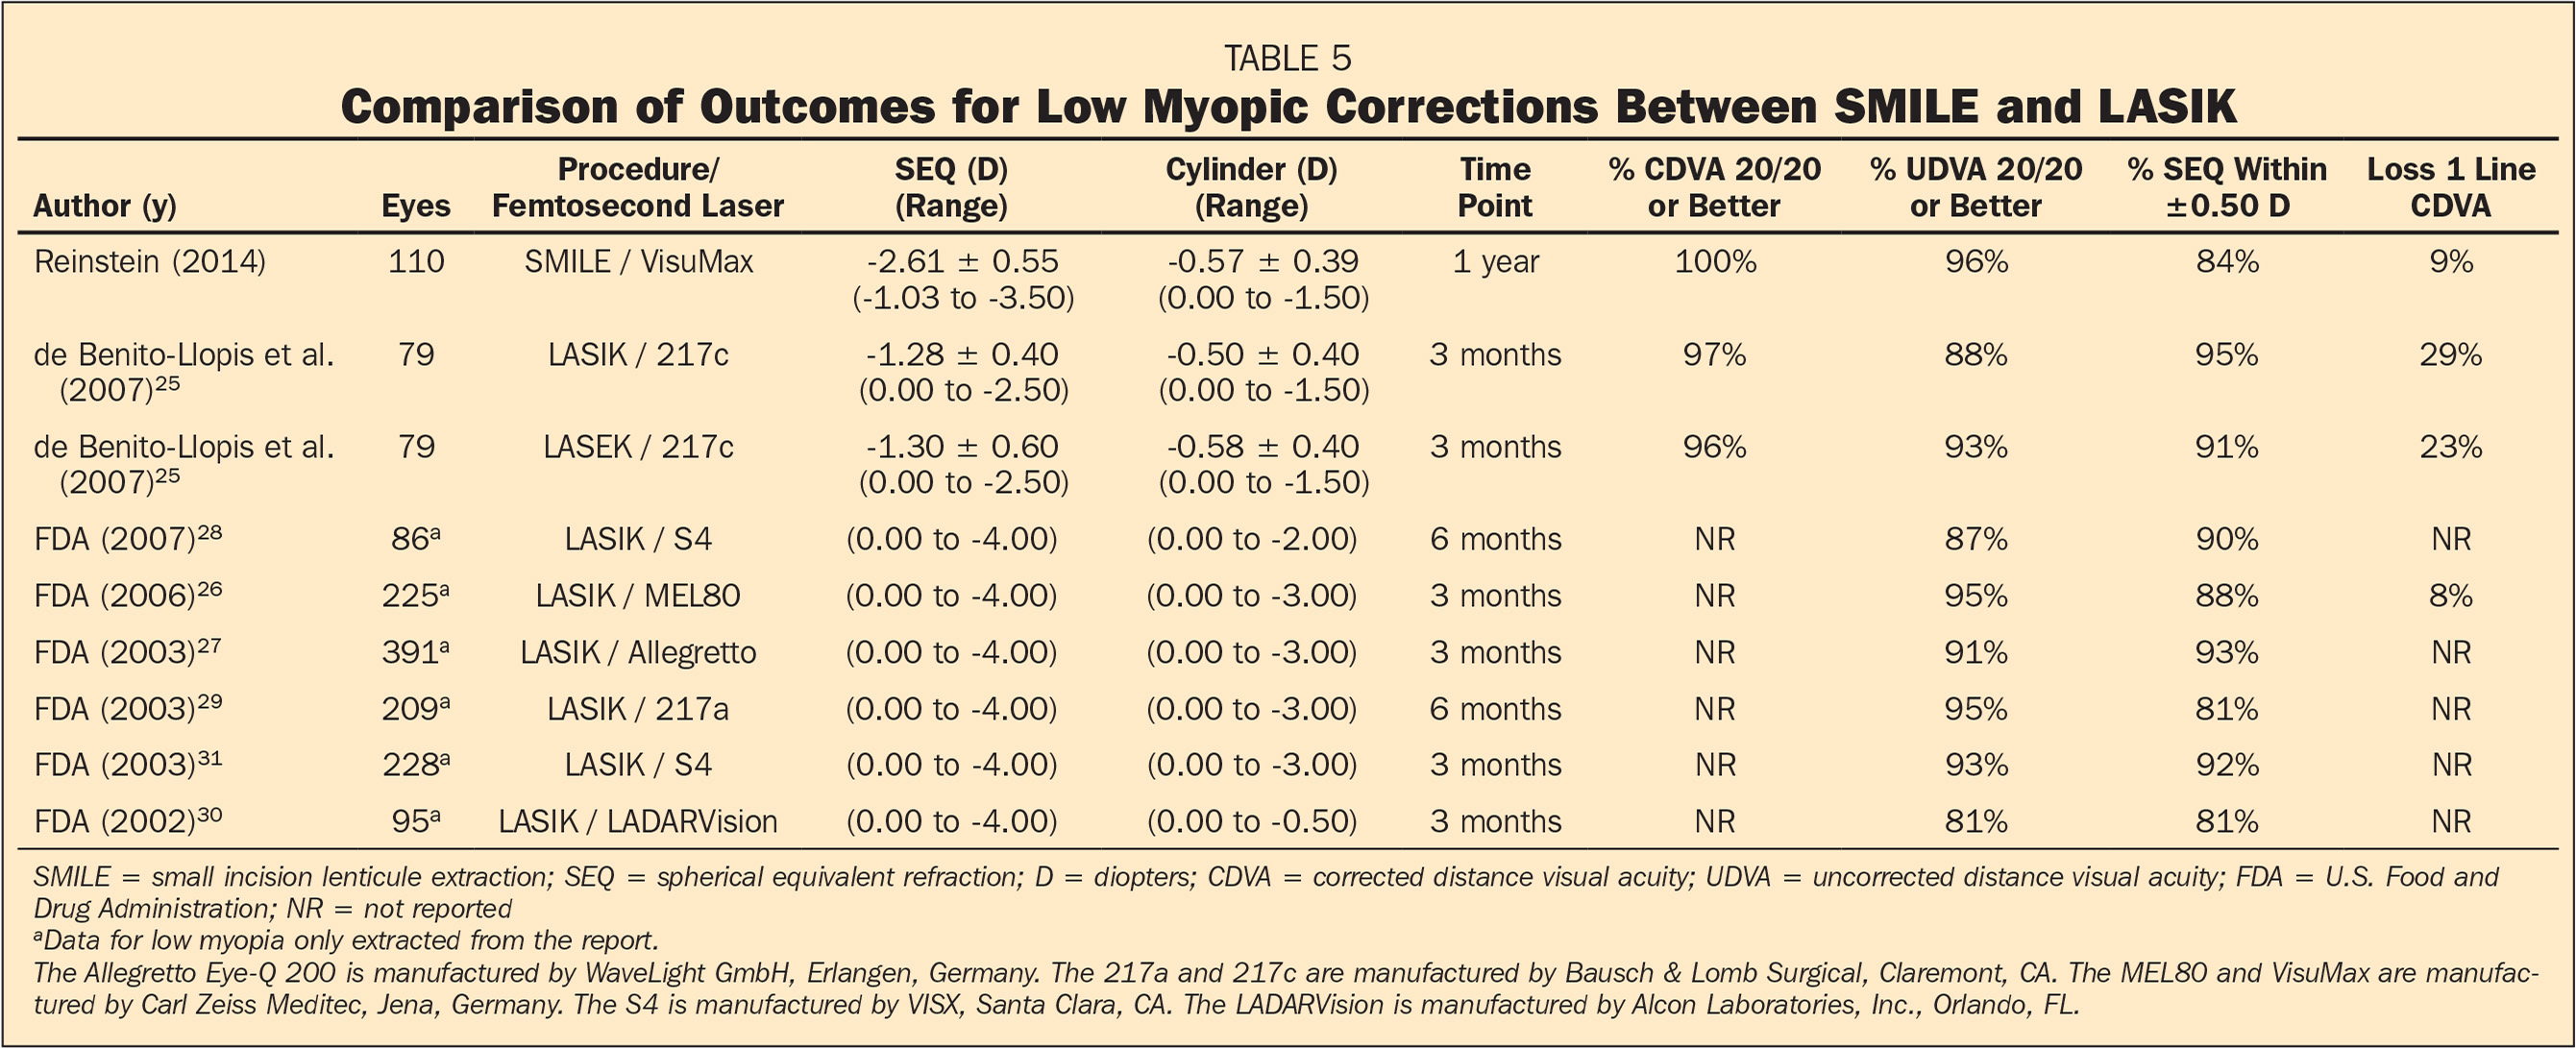 Comparison of Outcomes for Low Myopic Corrections Between SMILE and LASIK